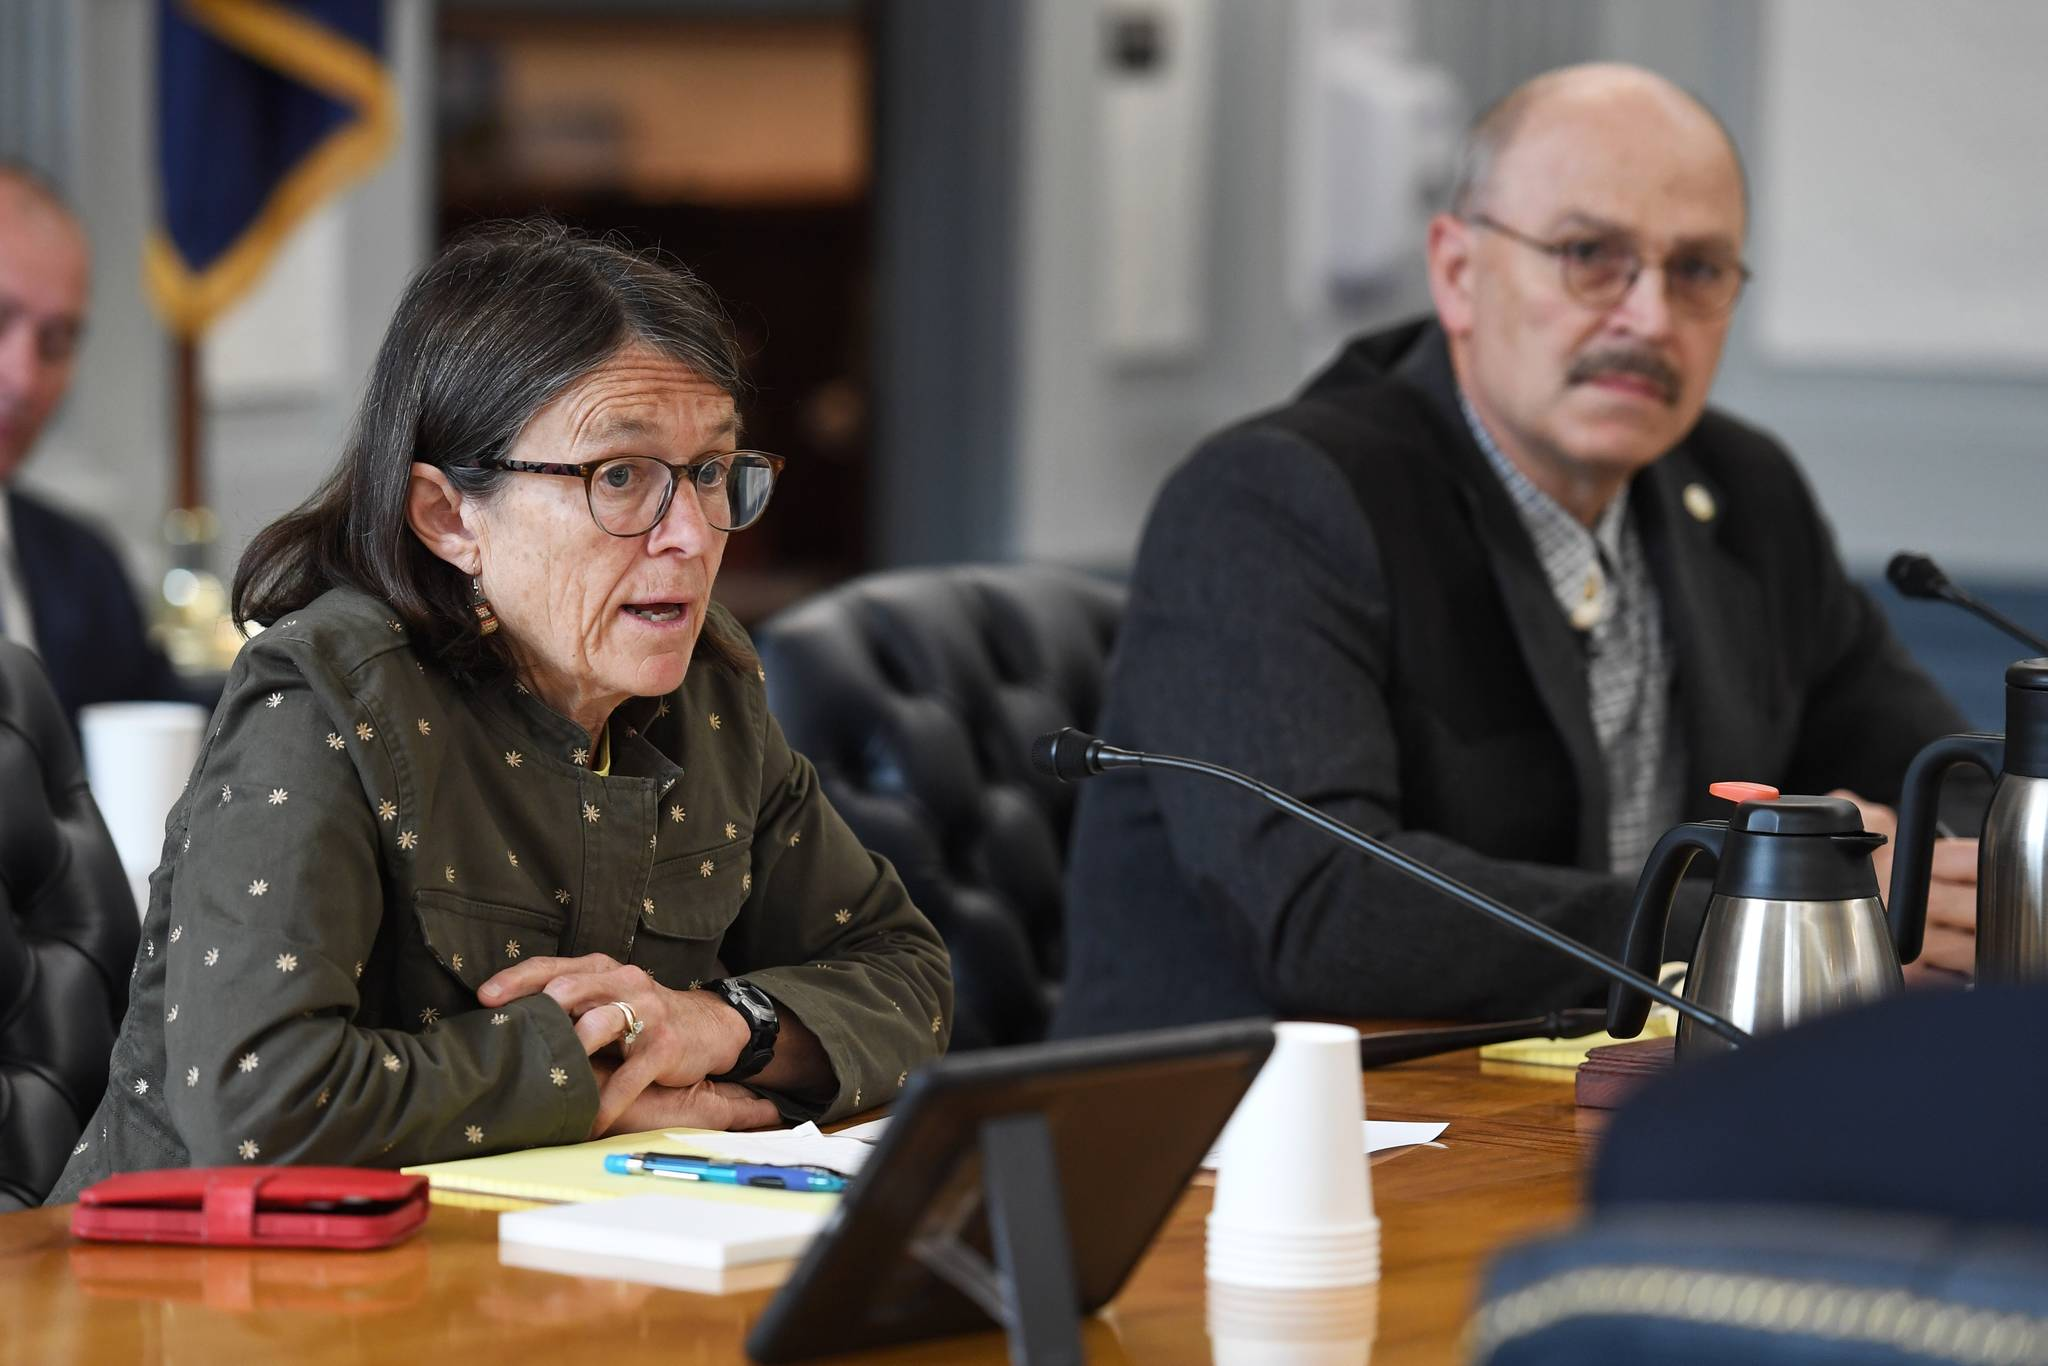 Co-Chairs Rep. Jennifer Johnston, R-Anchorage, left, and Sen. Click Bishop, R-Fairbanks, talk about the work to be done during the first meeting of a joint committee to work on the future of the Alaska Permanent Fund Dividend at the Capitol on Wednesday, June 12, 2019. (Michael Penn | Juneau Empire)